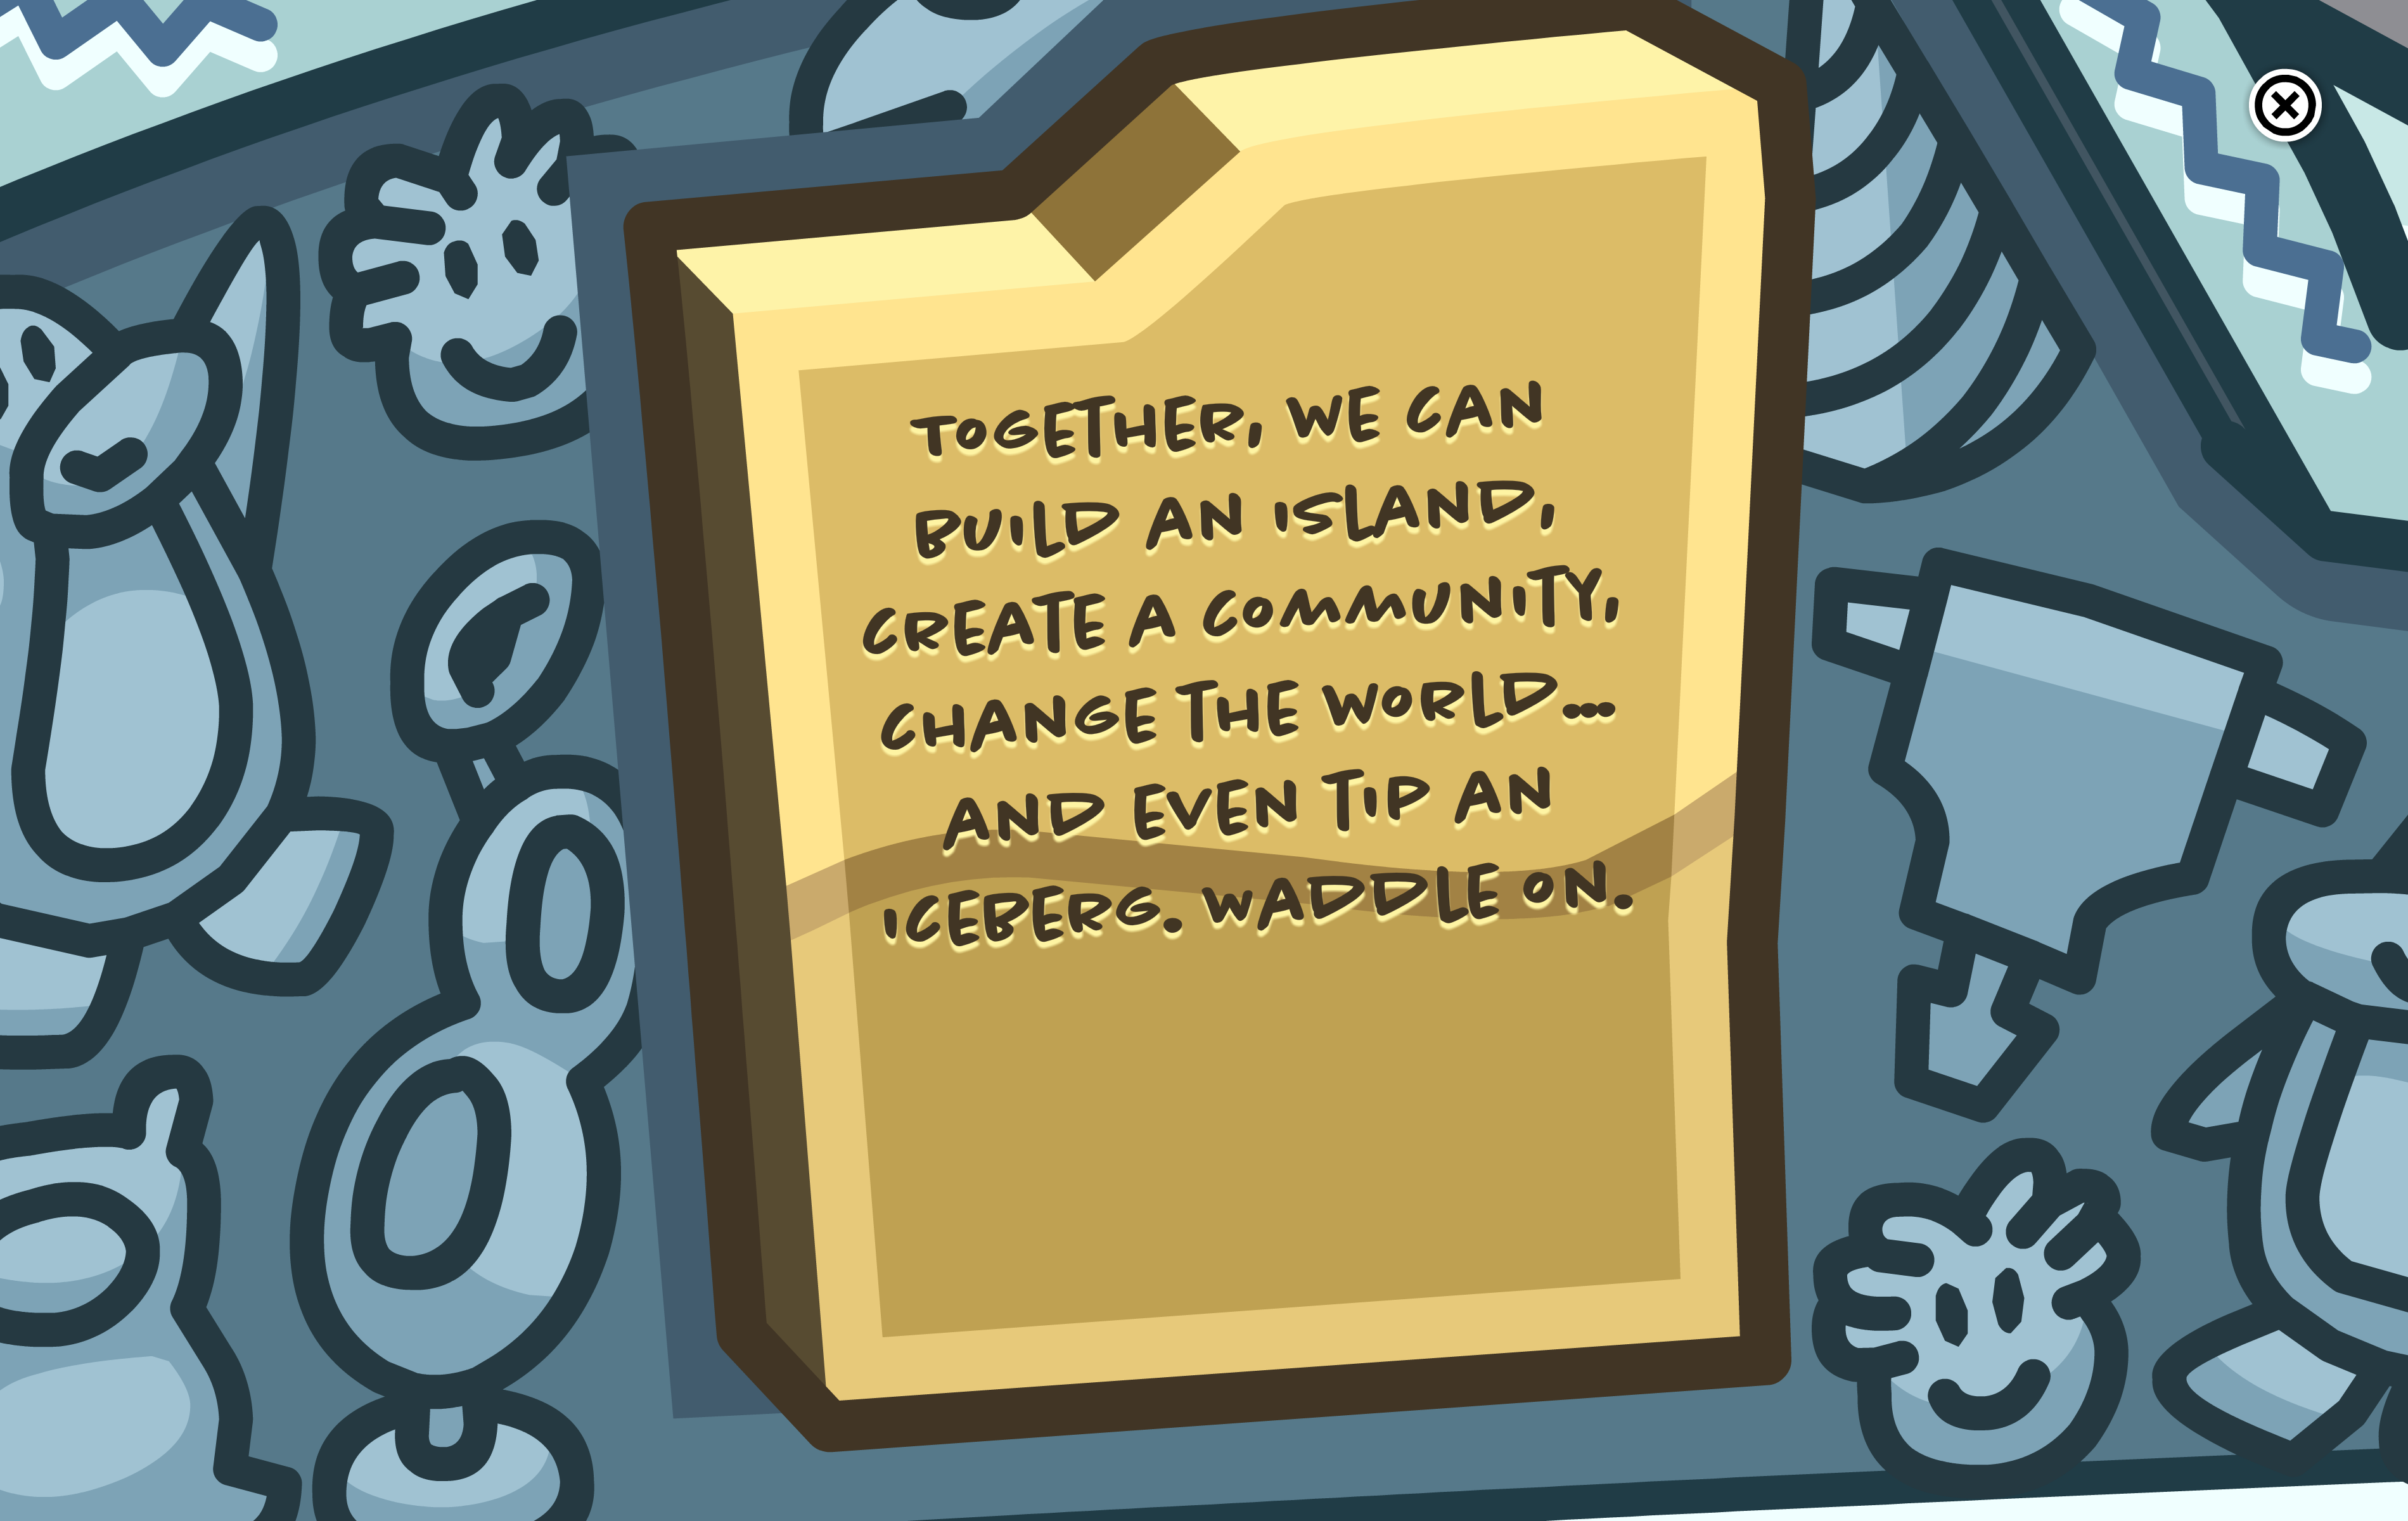 [Image] Club penguin coming in with the most real motivation.